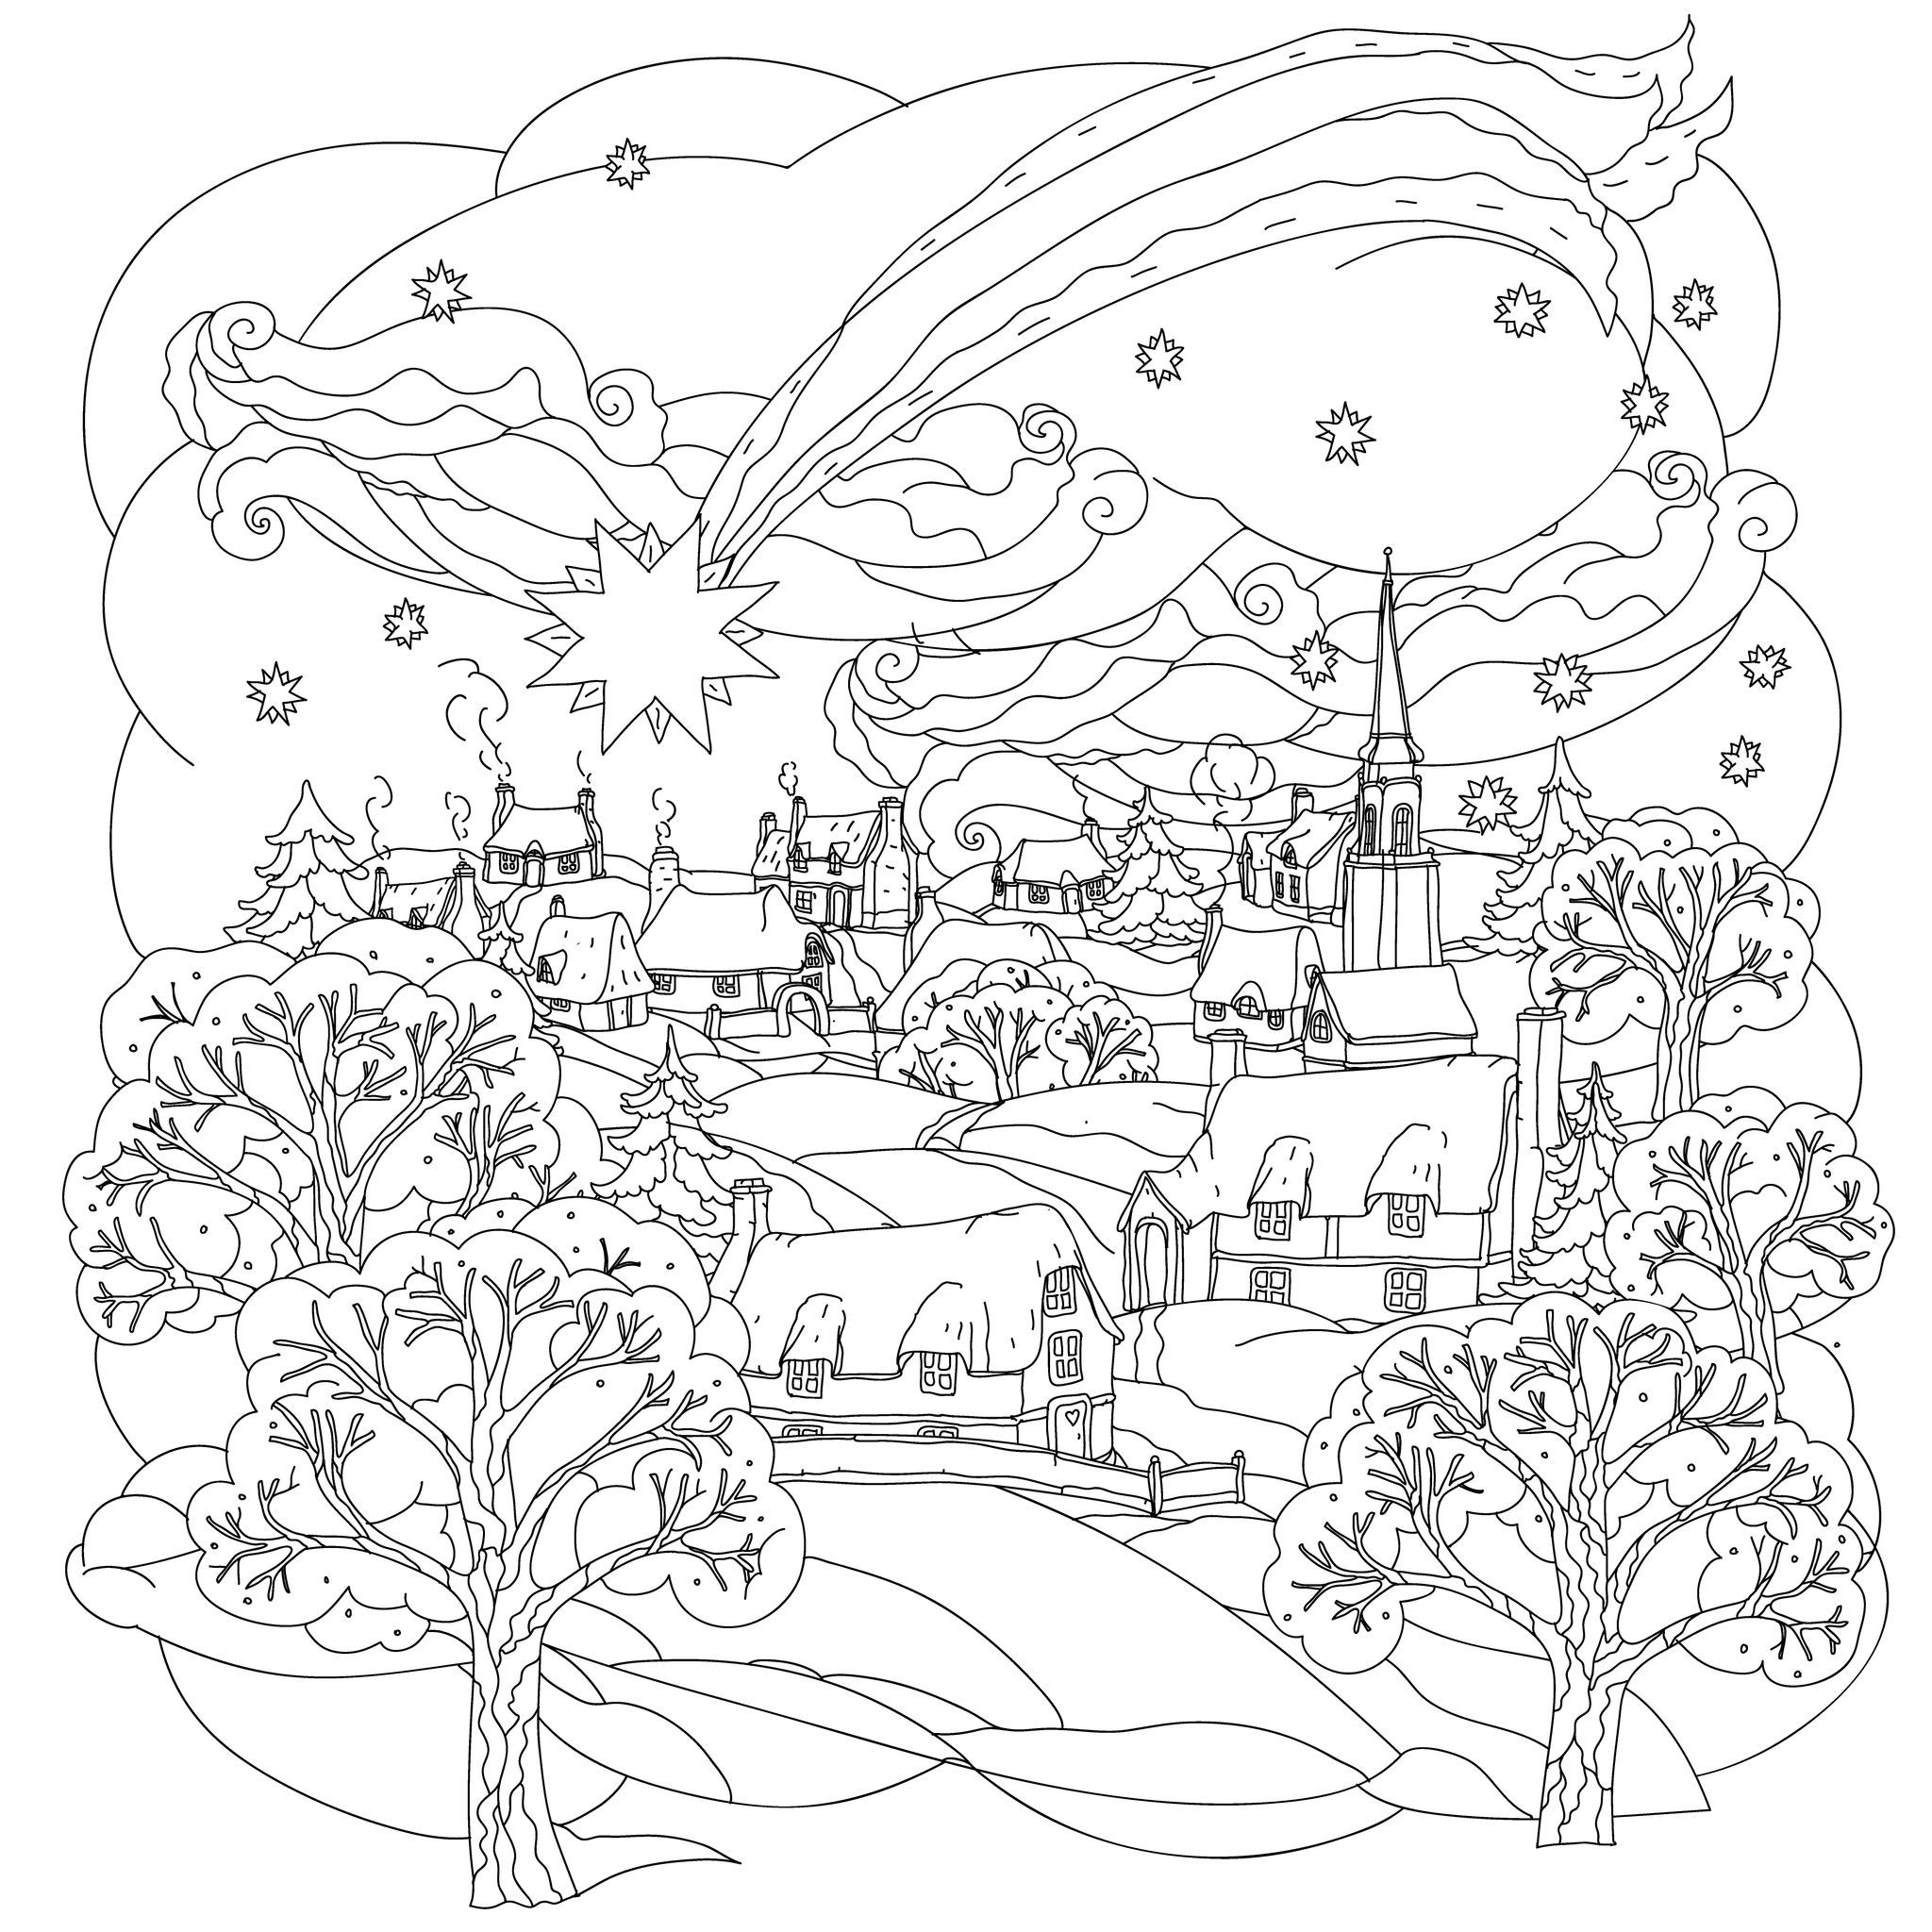 Christmas Village Coloring Pictures With Star Flies Over Winter A Beautiful And Simple